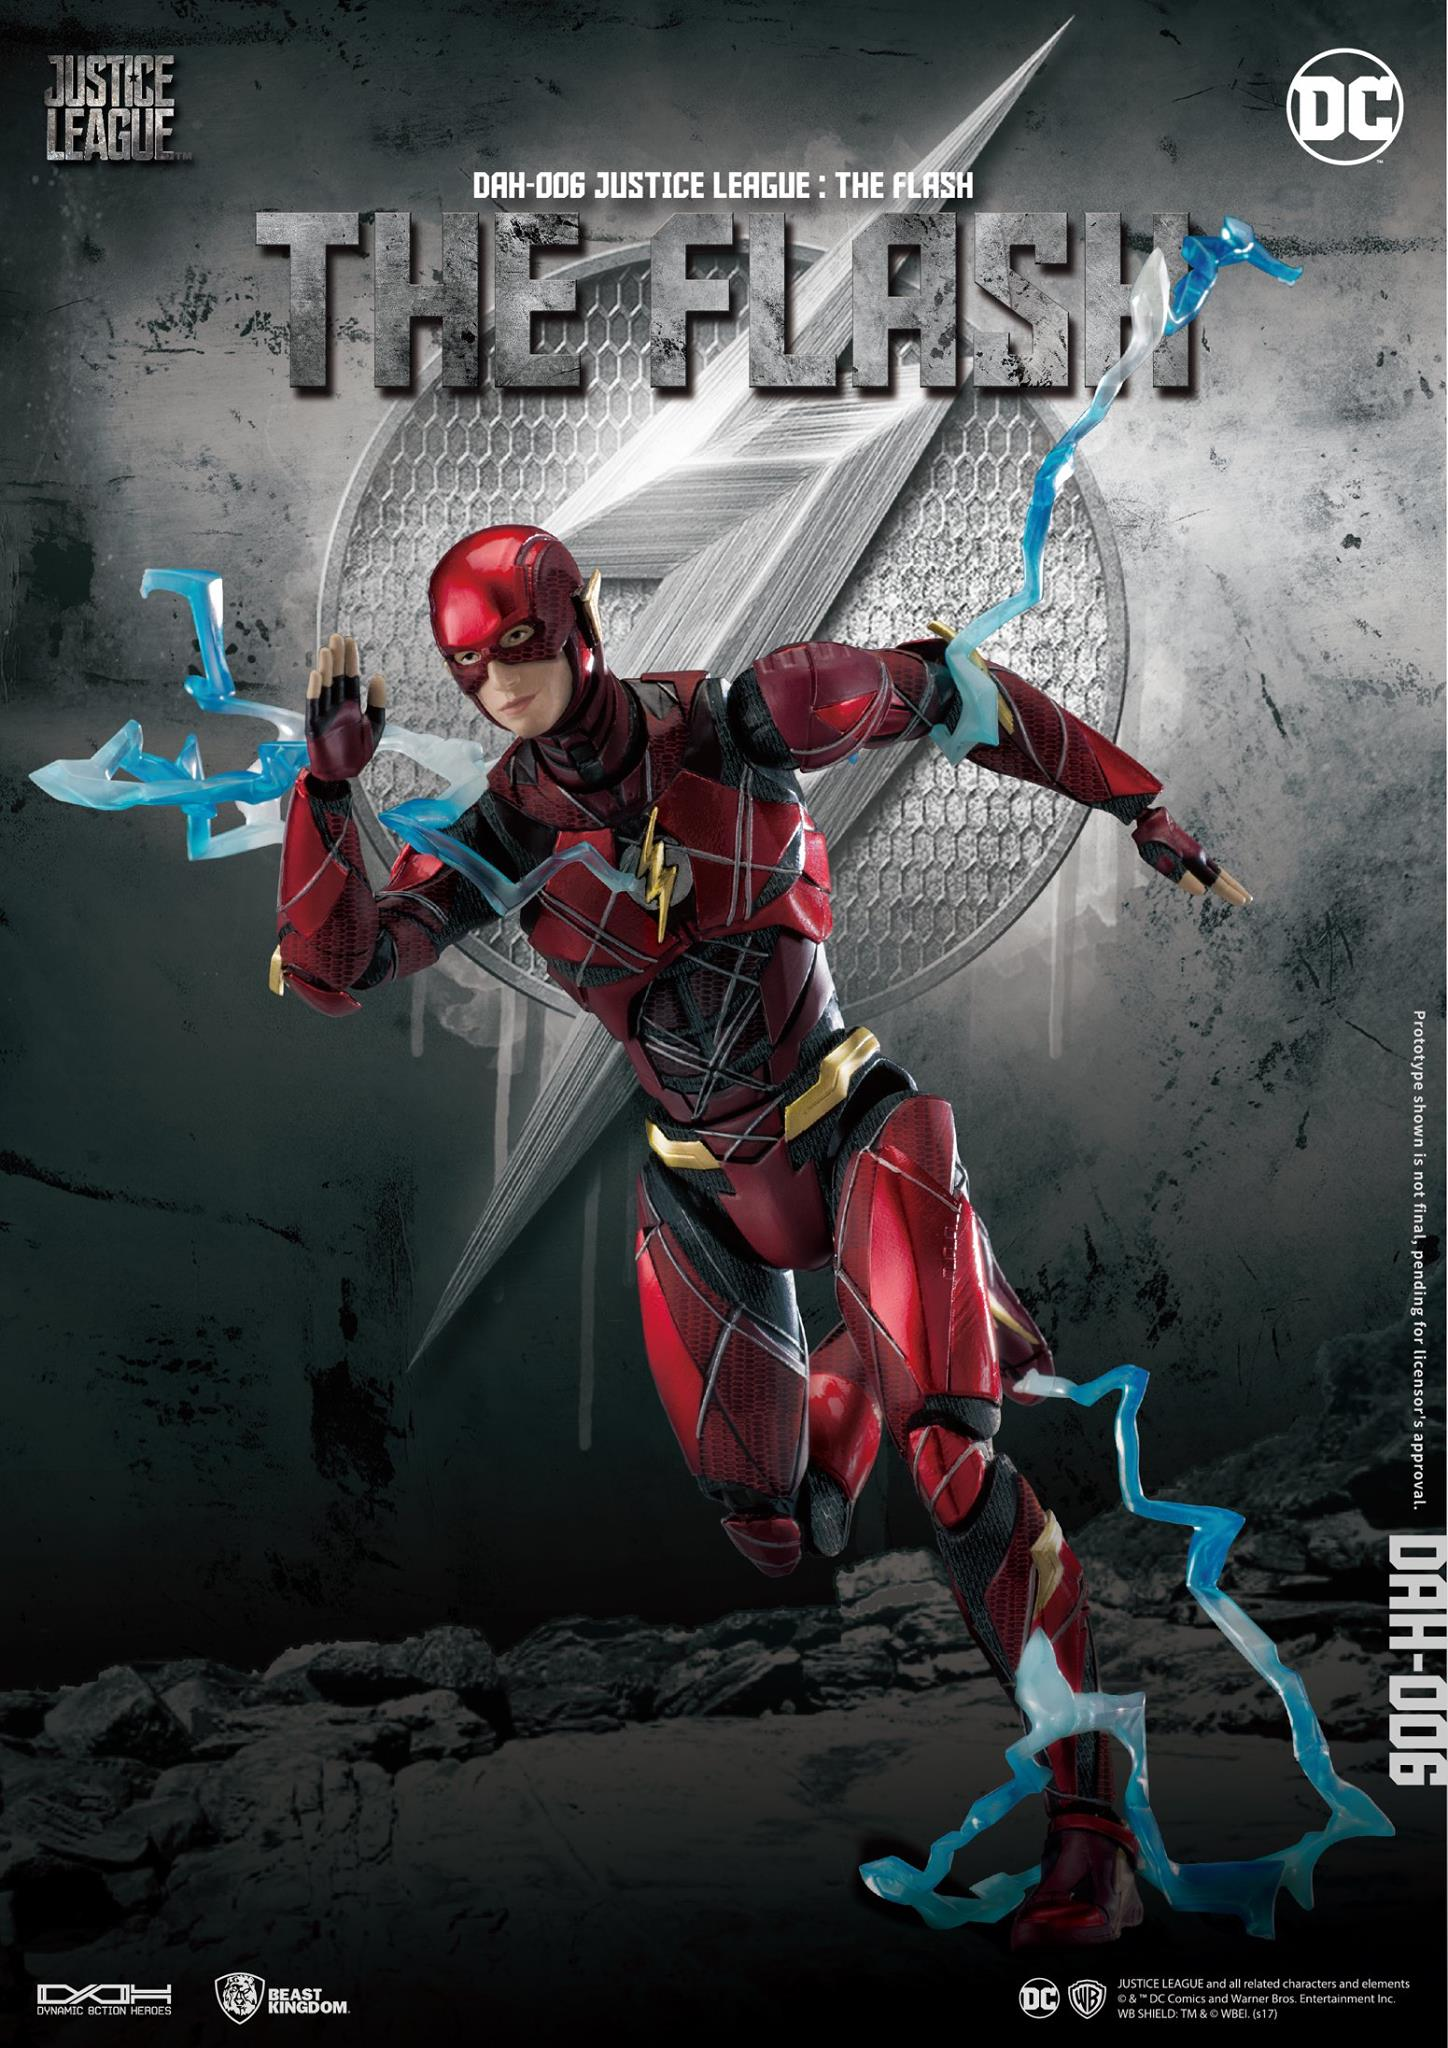 DAH-Justice-League-The-Flash-001